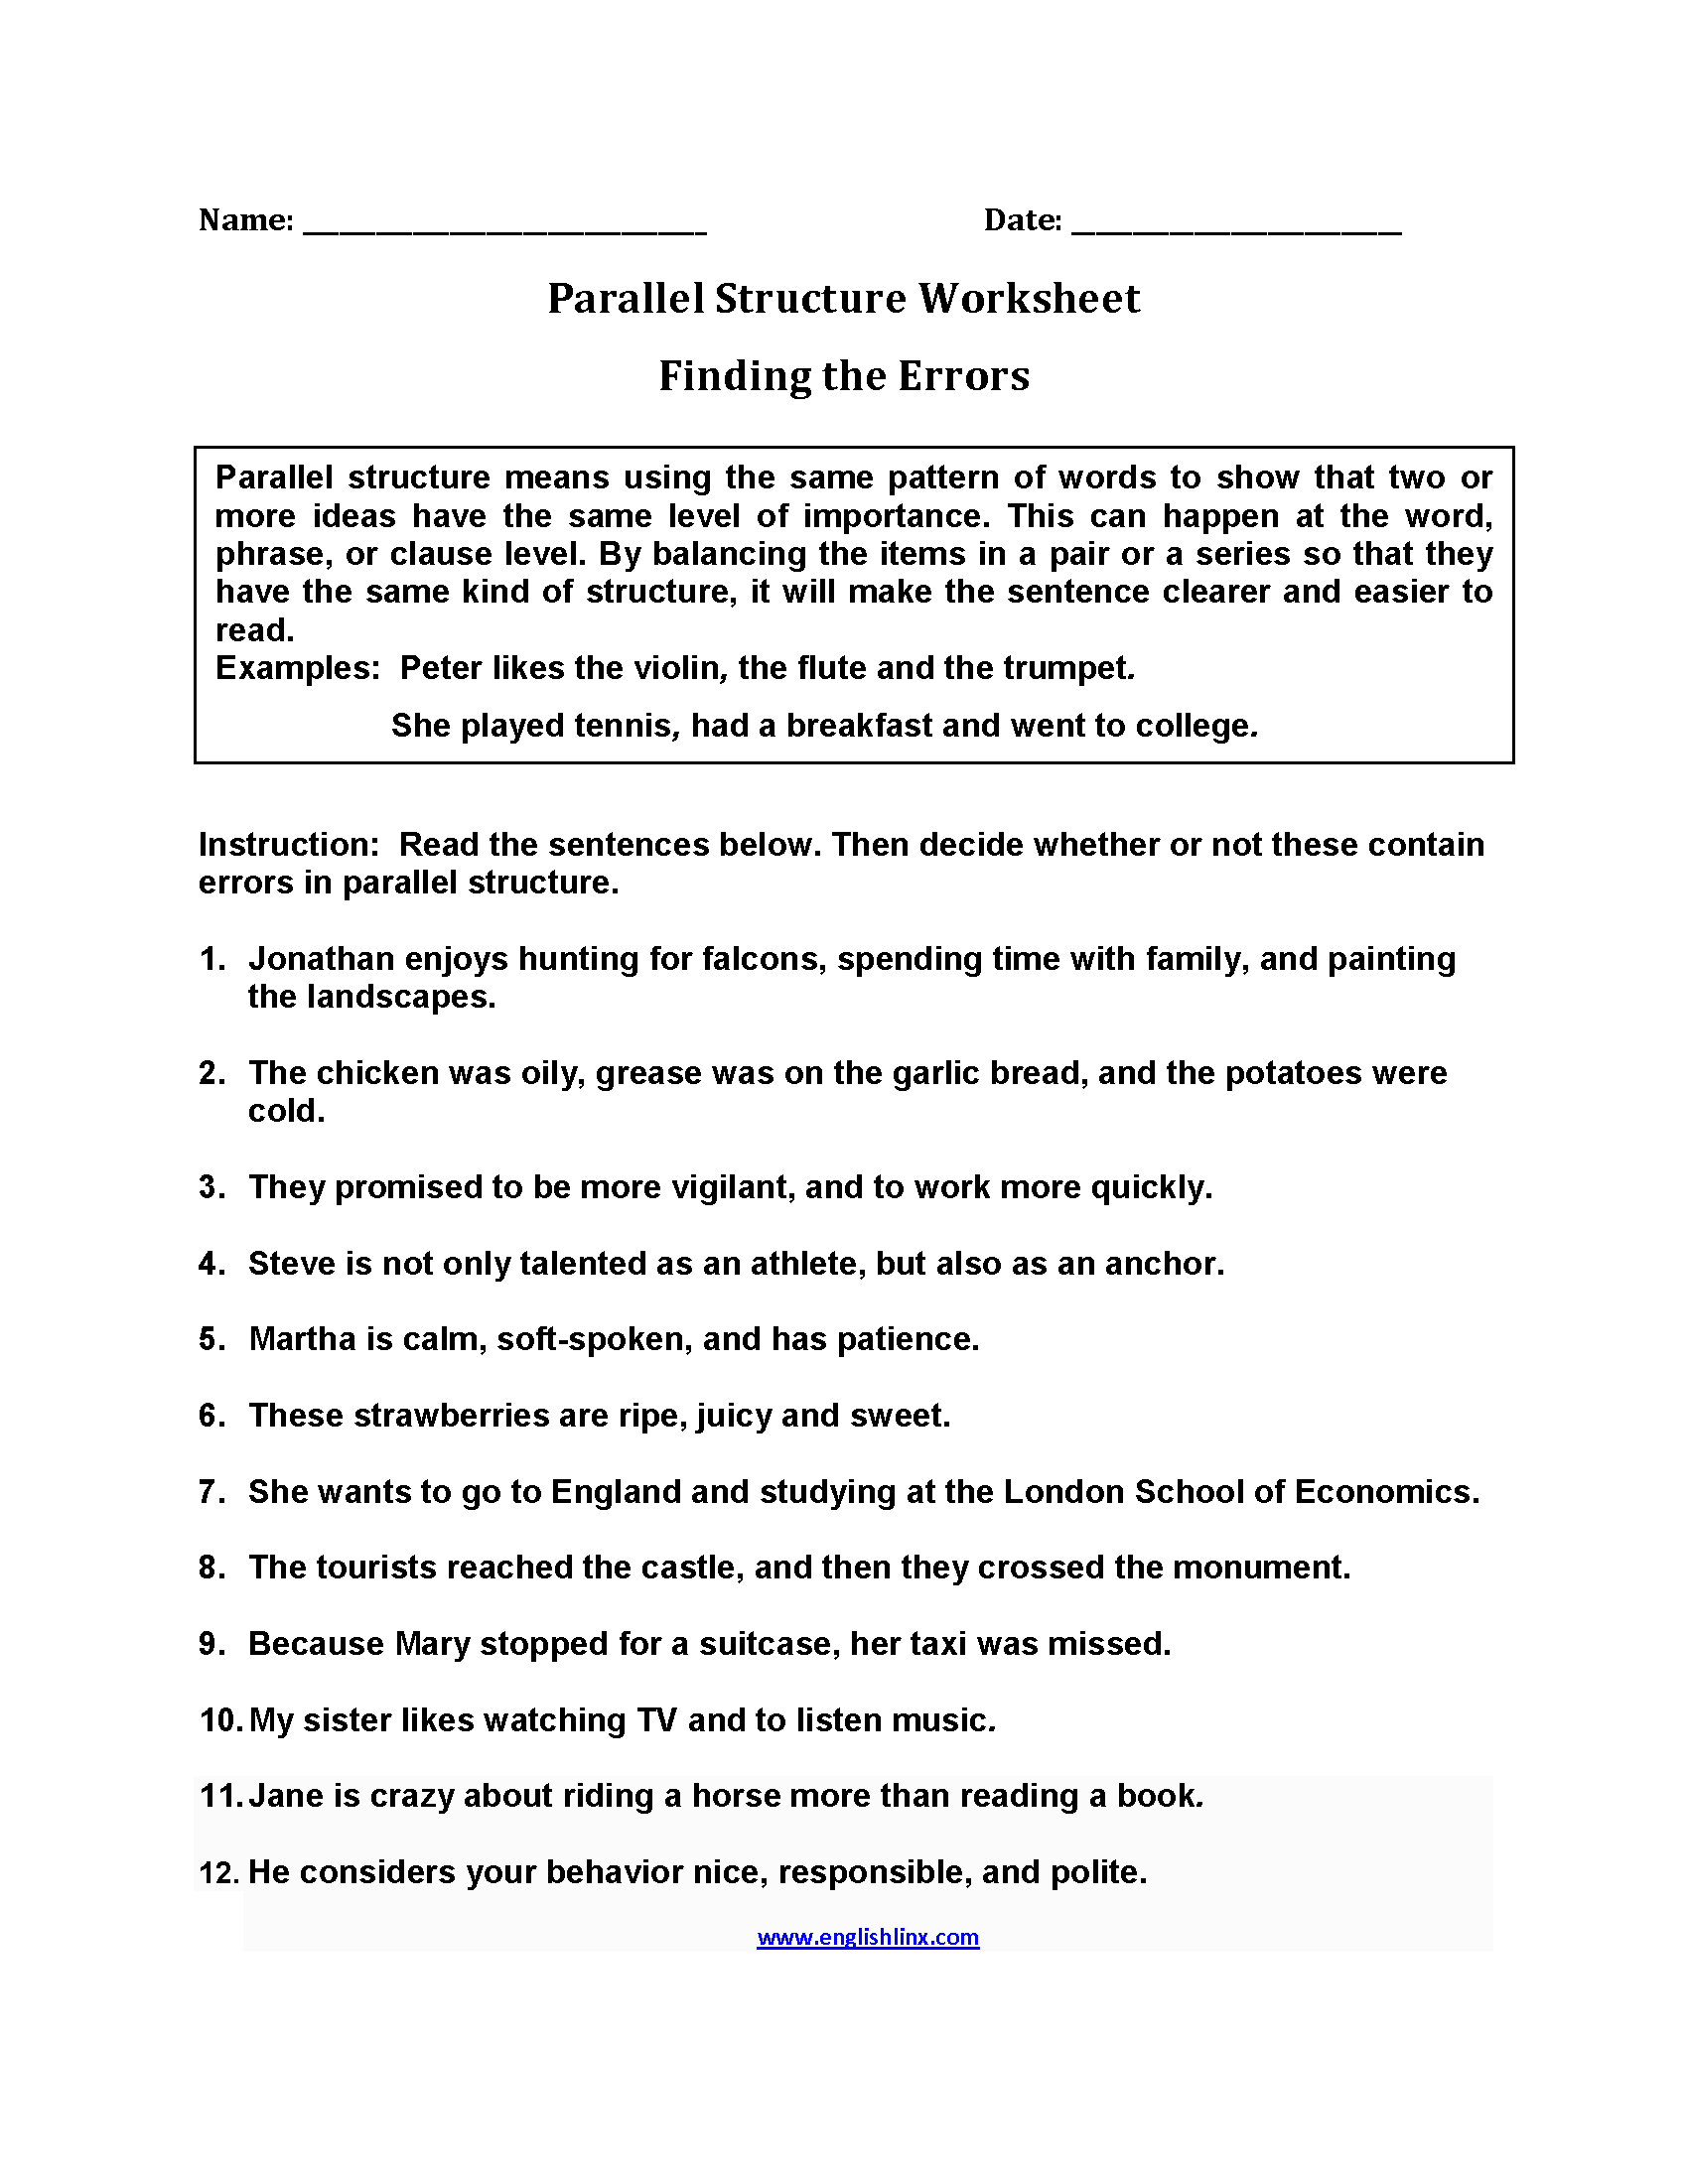 Worksheets Parallelism Worksheet finding errors parallel structure worksheets grammar pinterest worksheets